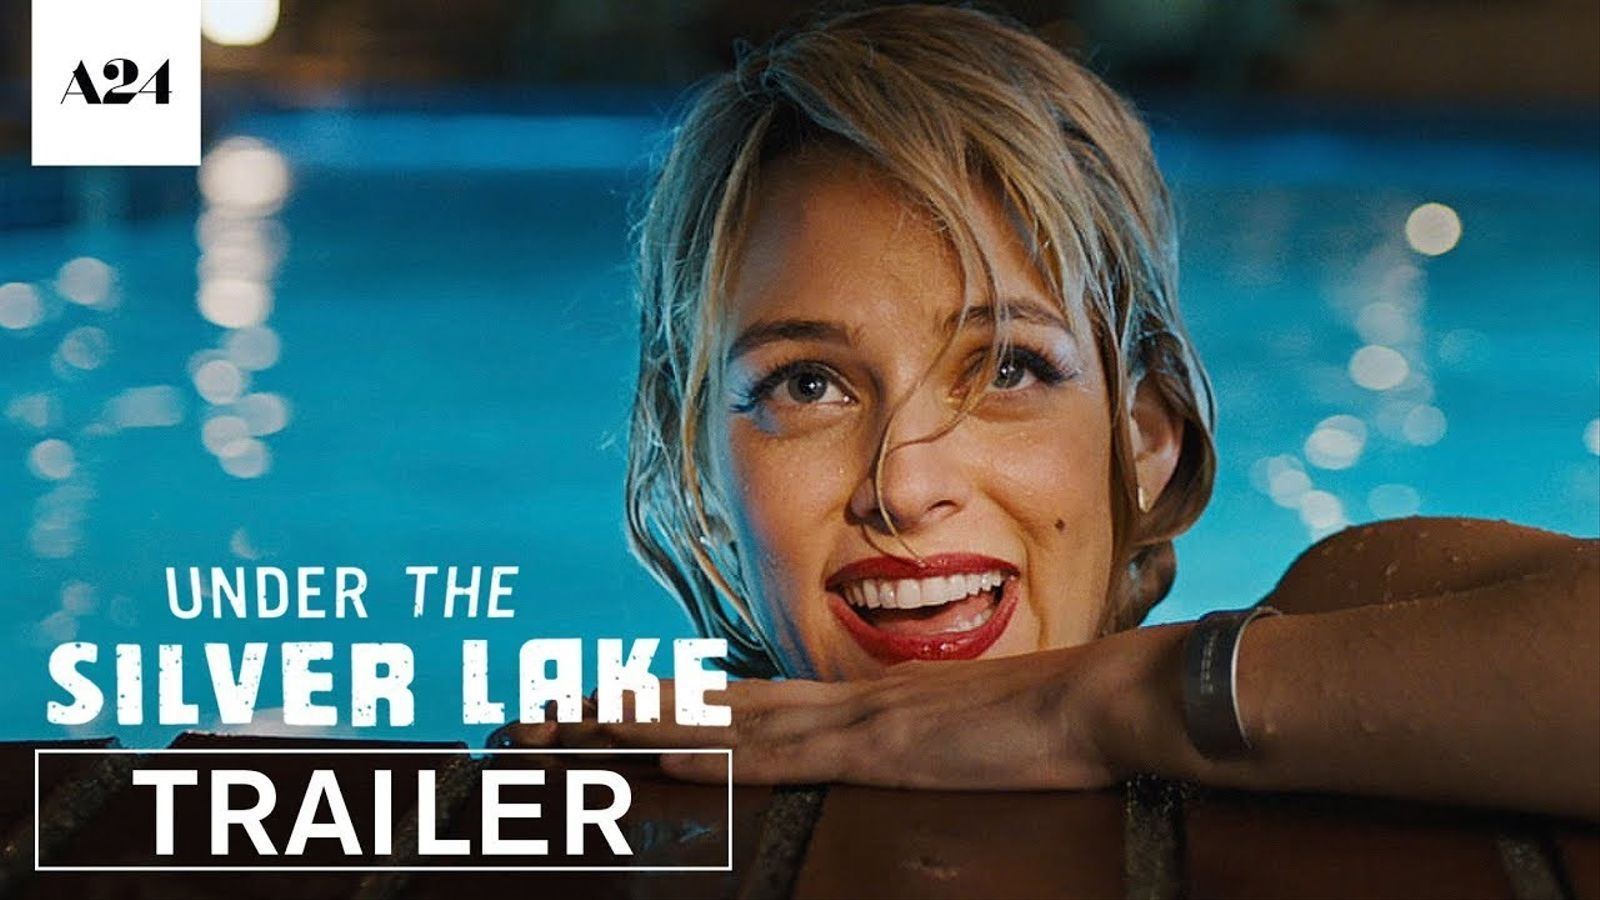 Tràiler d''Under the silver lake'